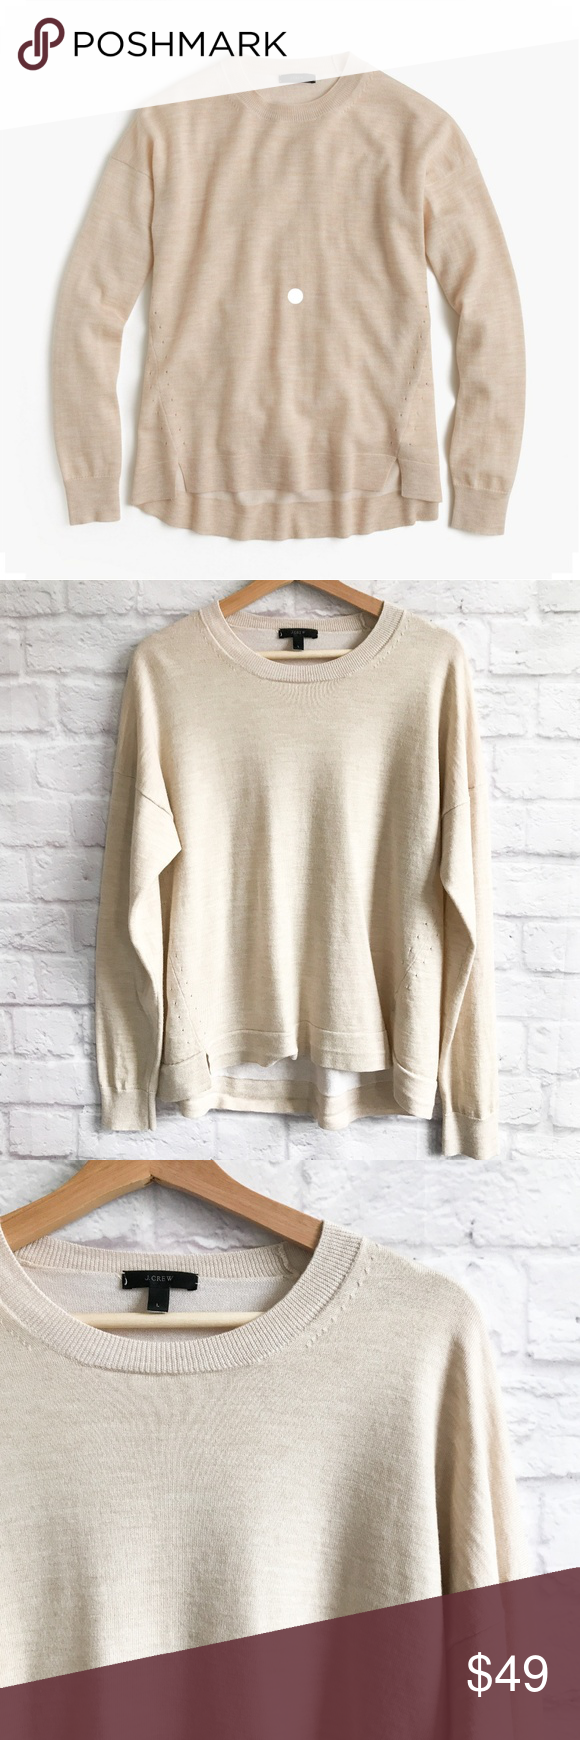 b5284cf4f6f J. Crew Lightweight Wool Tunic Sweater in Natural Comfy and soft wool-blend  sweater